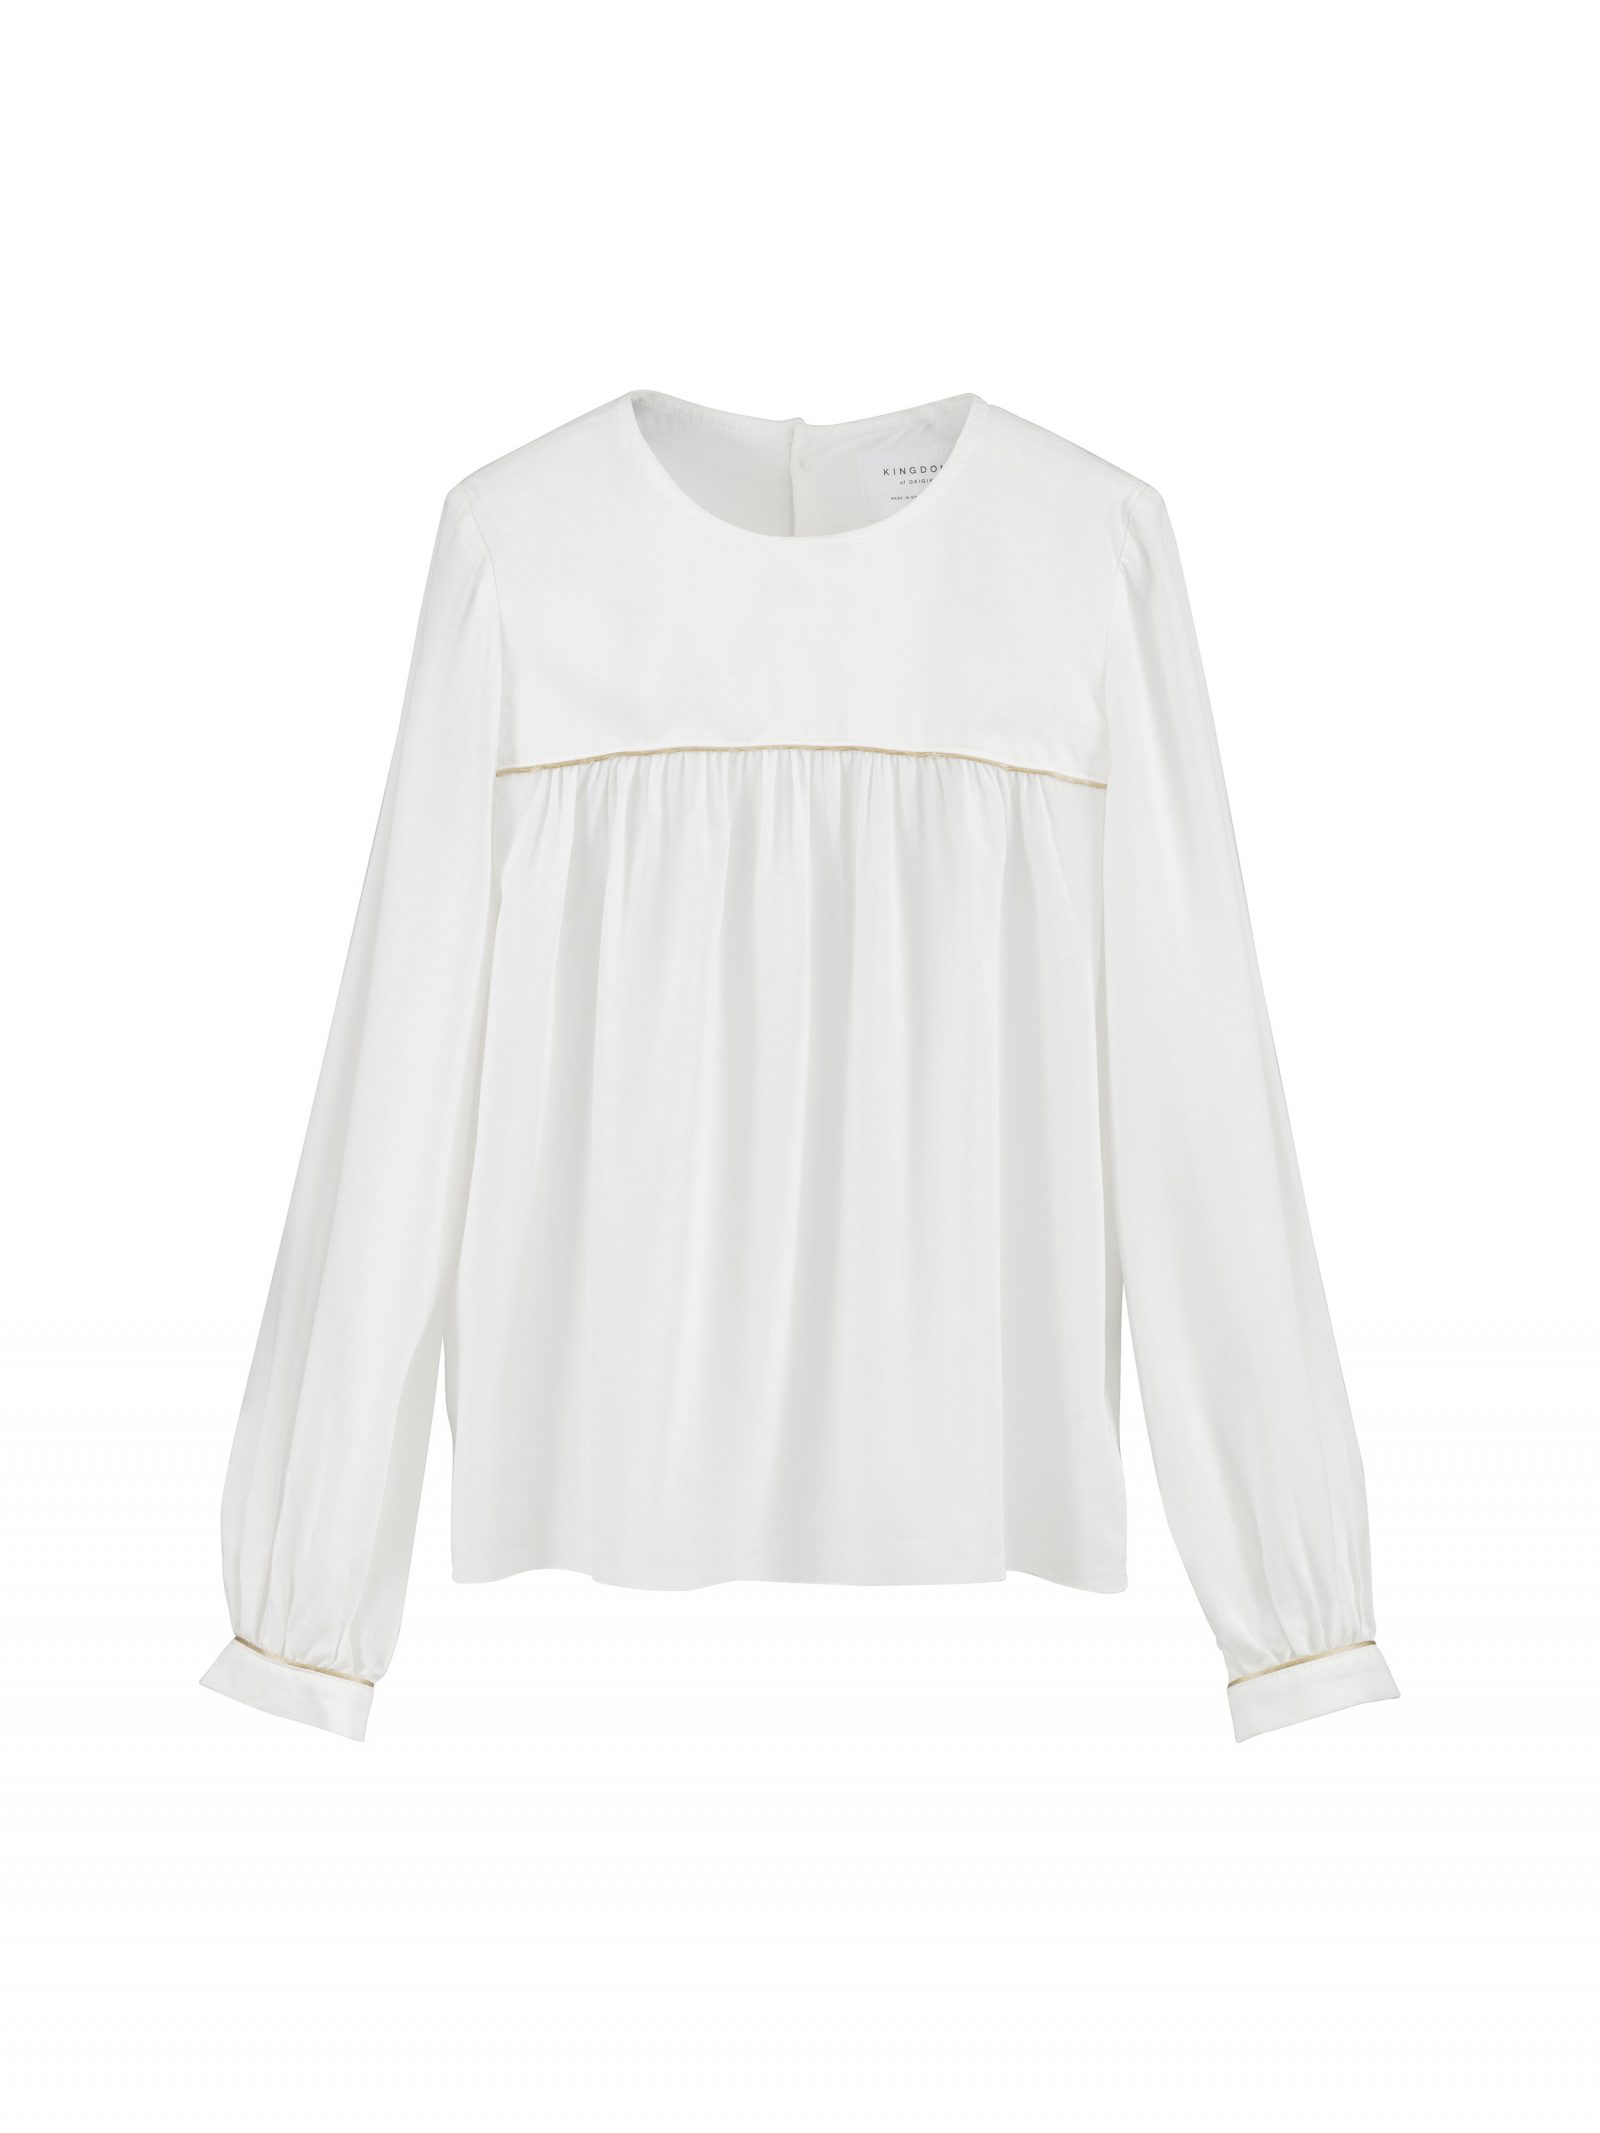 Pattie Long Sleeve Blouse in Ivory - Front